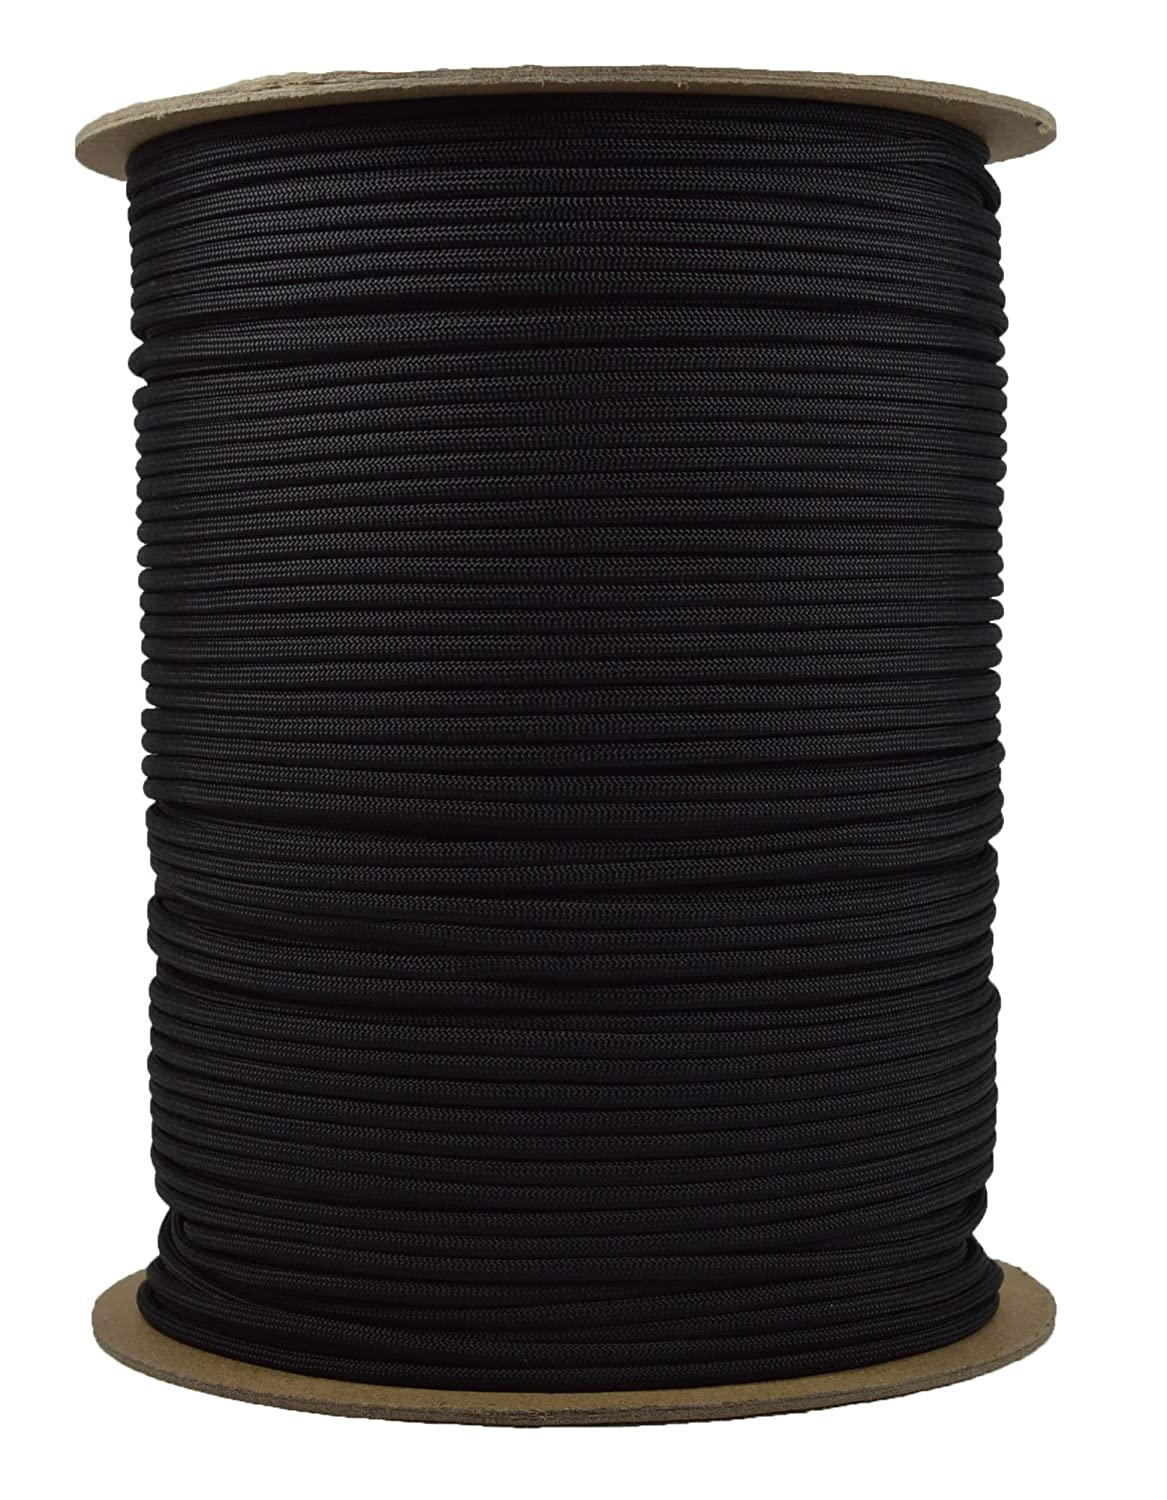 1000 Foot Spools of Parachute 550 Cord Type III 7 Strand Paracord Black Bored Paracord